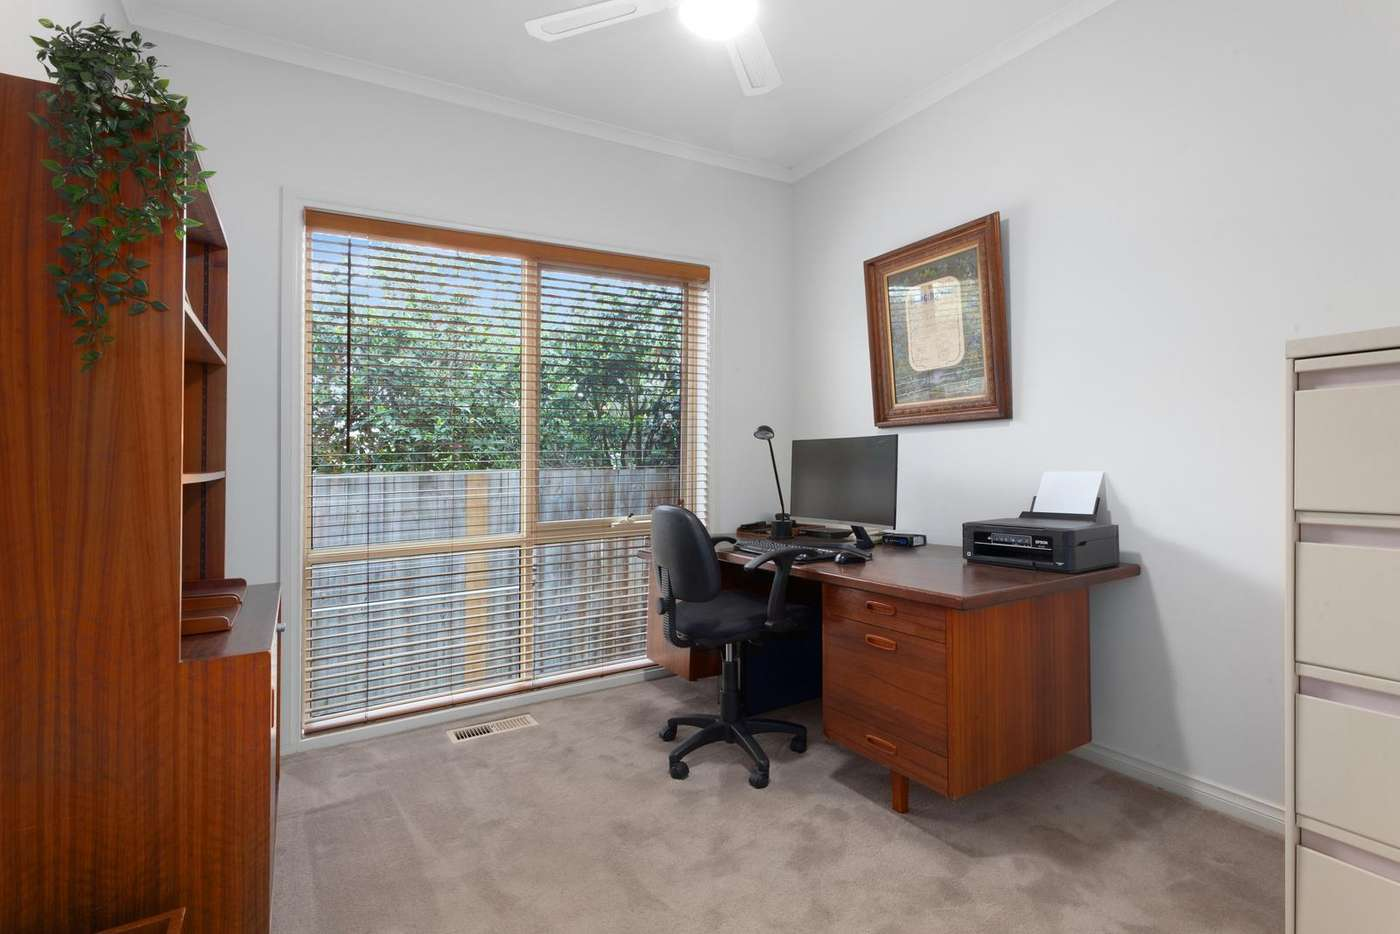 Sixth view of Homely unit listing, 39 Werder Street, Box Hill North VIC 3129